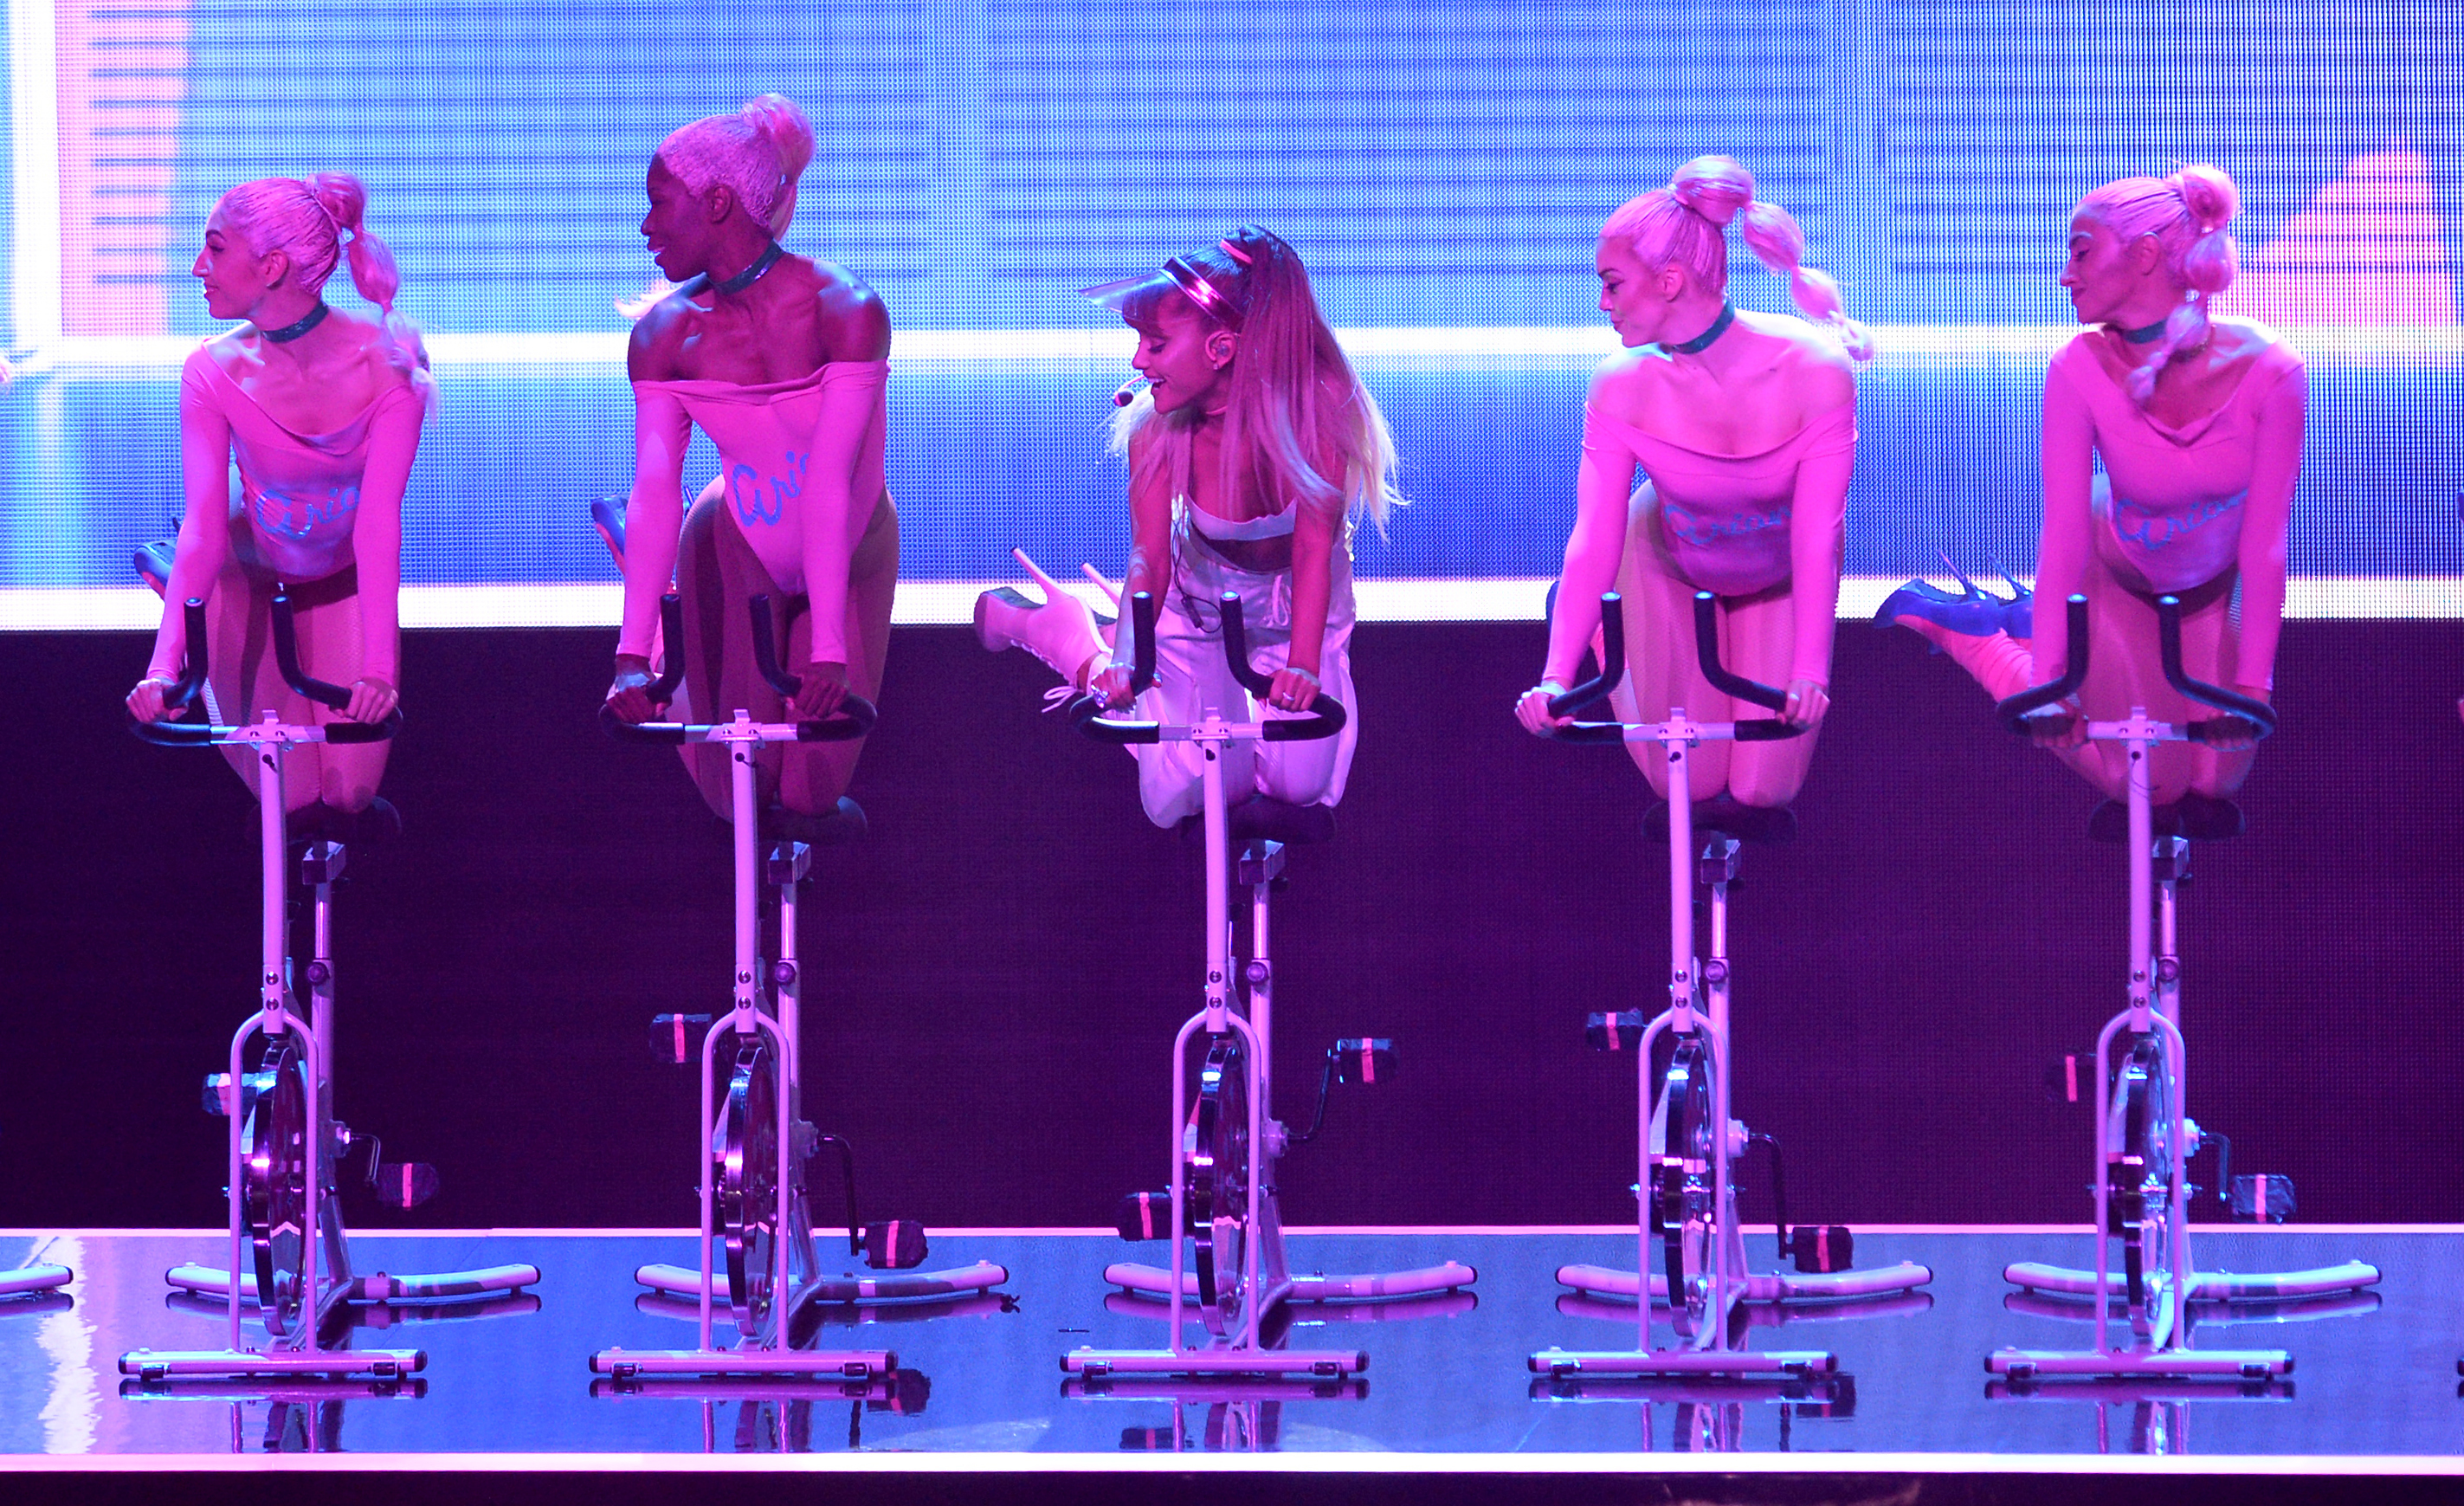 Ariana Grande performs on stage during the show at the MTV Video Music Awards 2016, Madison Square Garden, New York City.